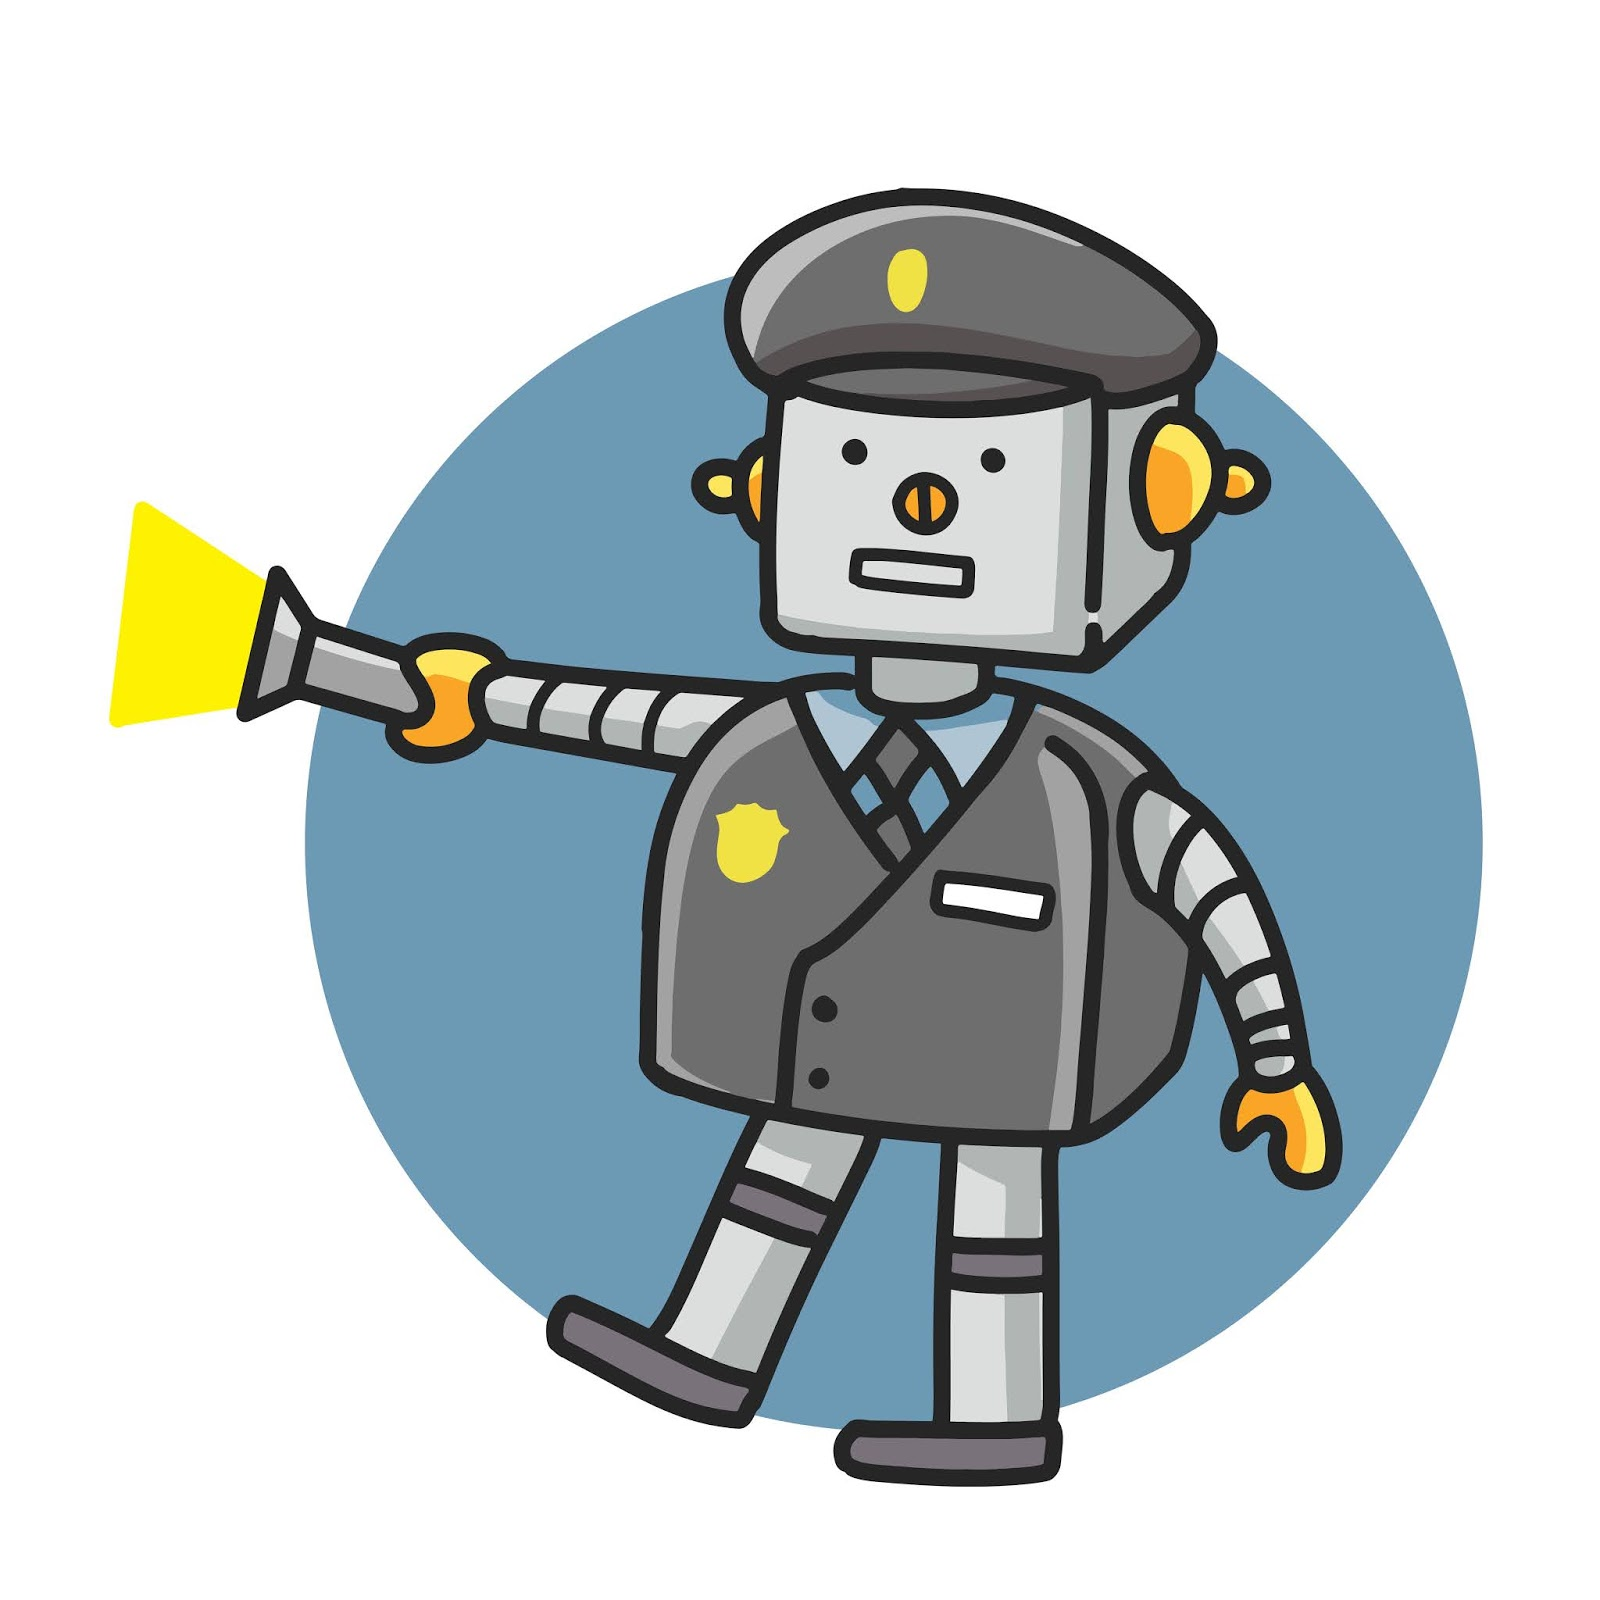 Police Robot Cartoon Doodle Style Drawing	 Free Download Vector CDR, AI, EPS and PNG Formats